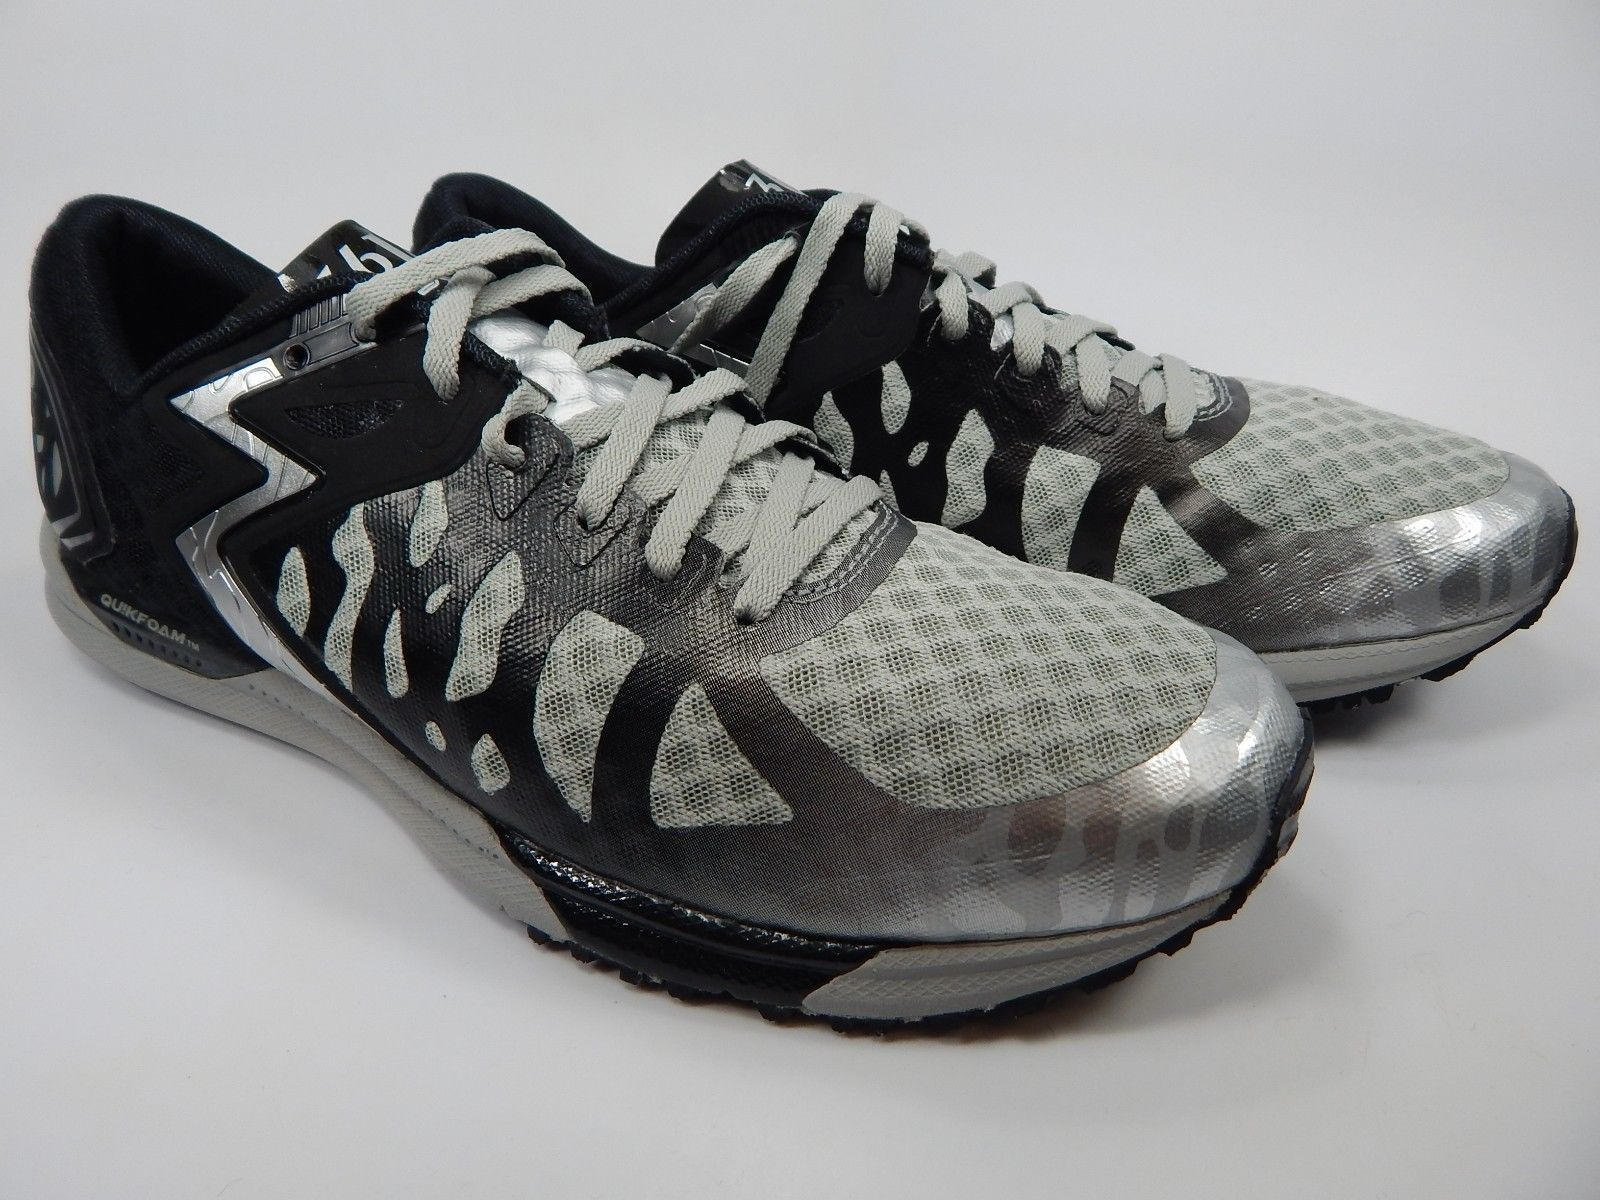 361 Degrees Chaser Men's Running Shoes Size US 9.5 M (D) EU 43.5 Gray